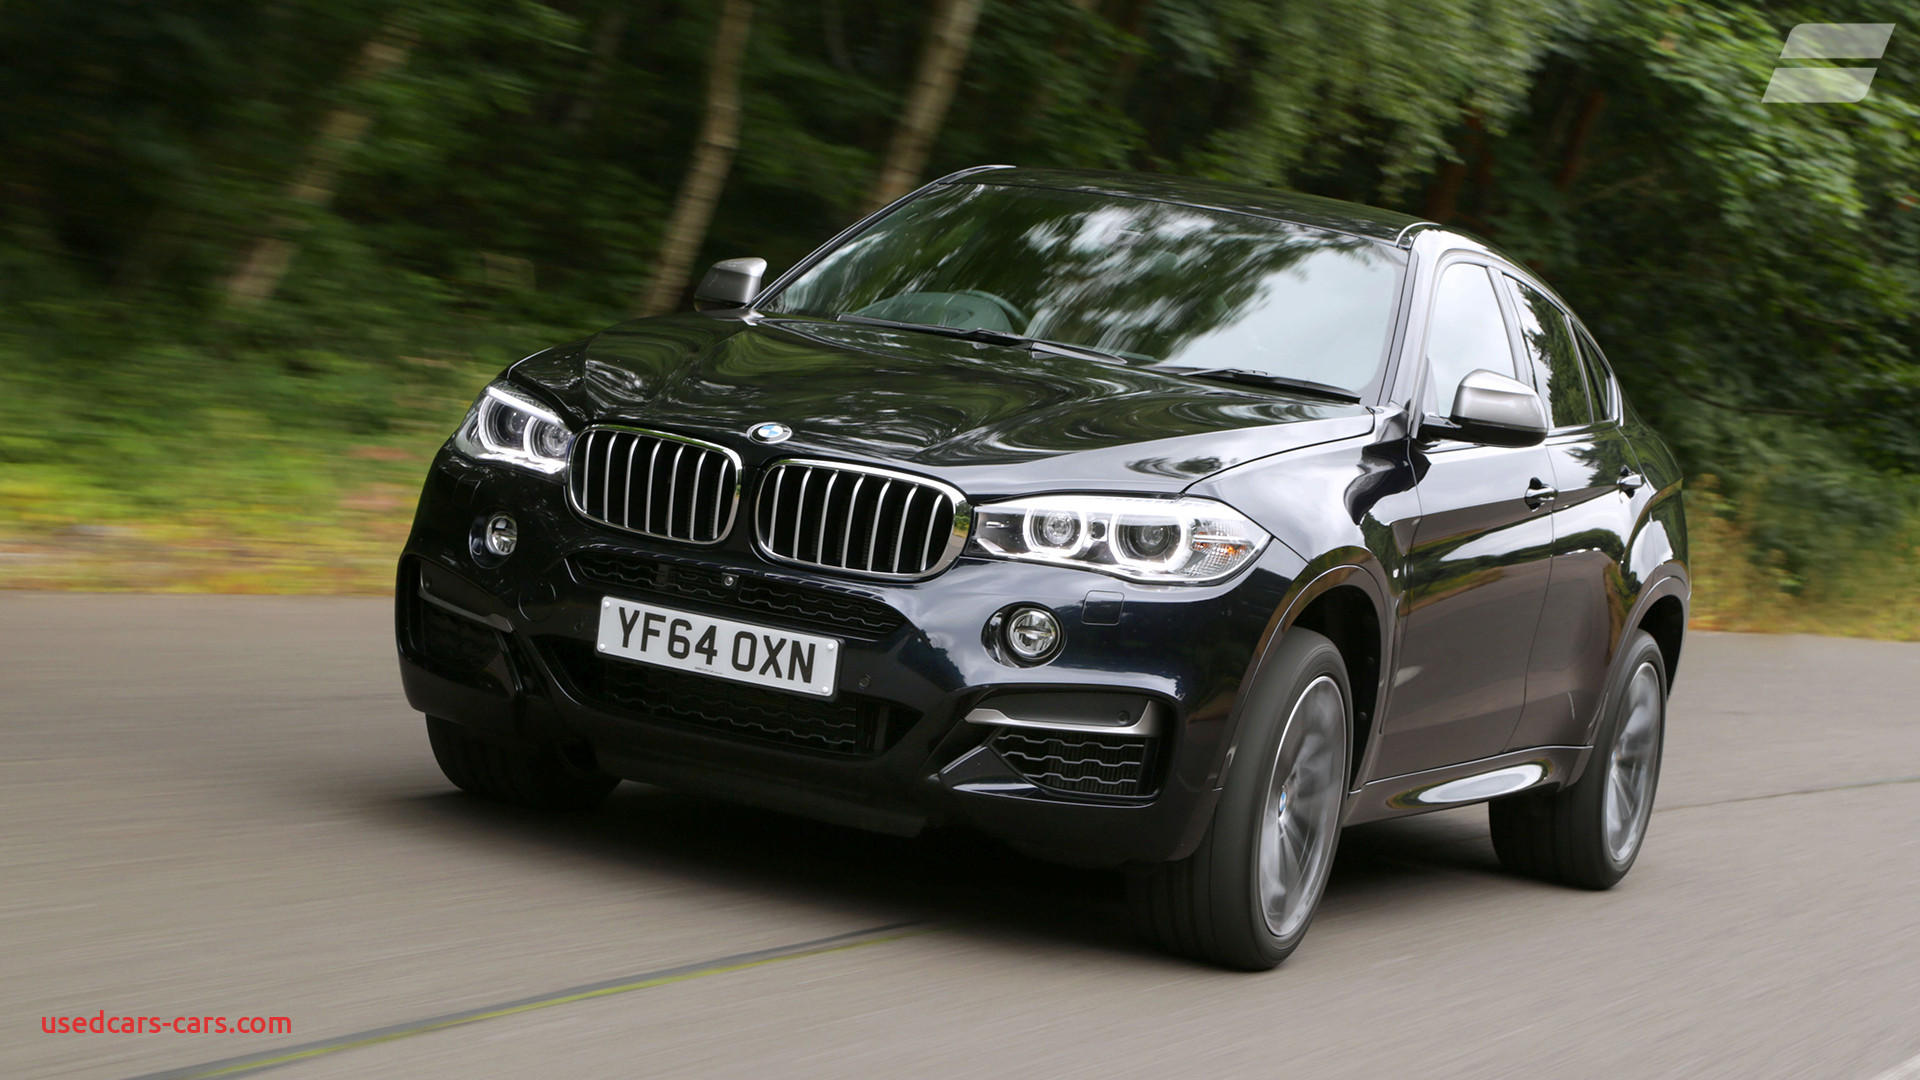 Top Rated Suv 2015 New Bmw X6 Suv 2015 Review